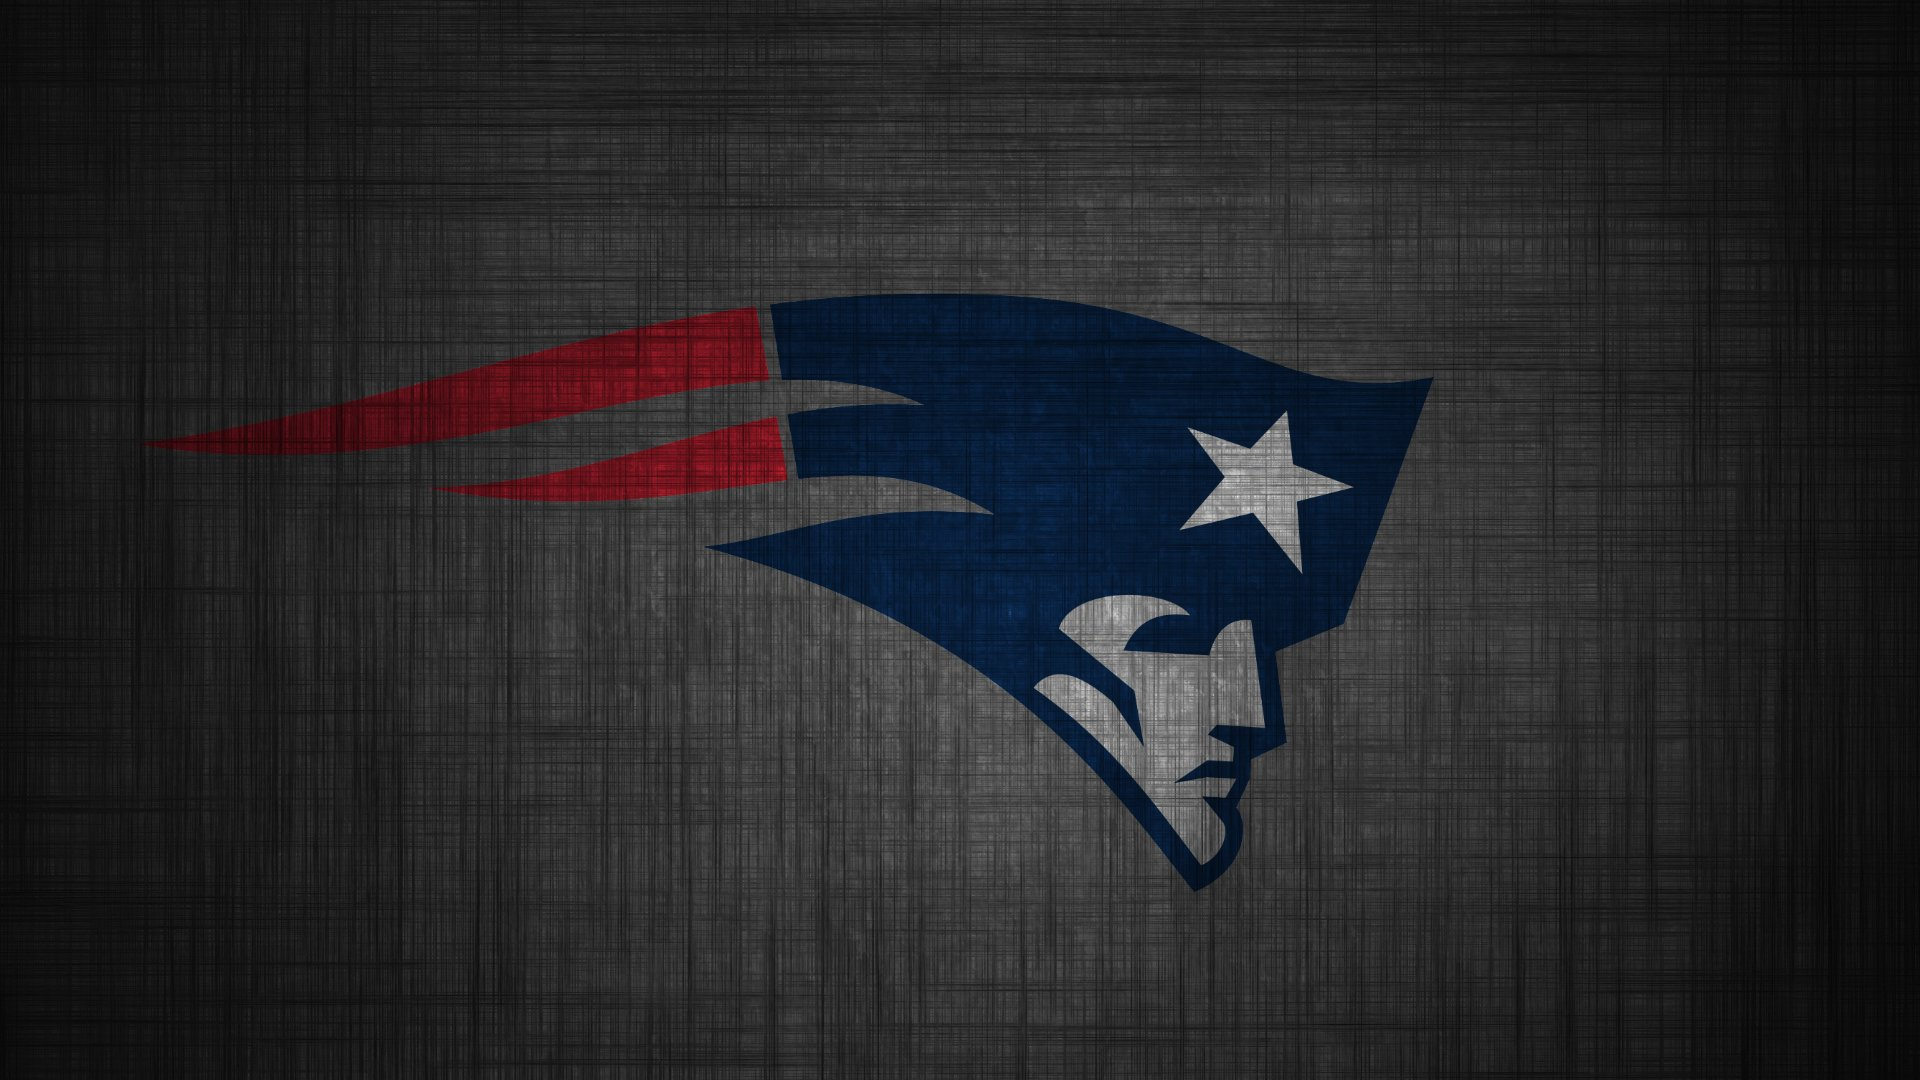 New England Patriots Hd Wallpaper HD Wallpapers 1920x1080